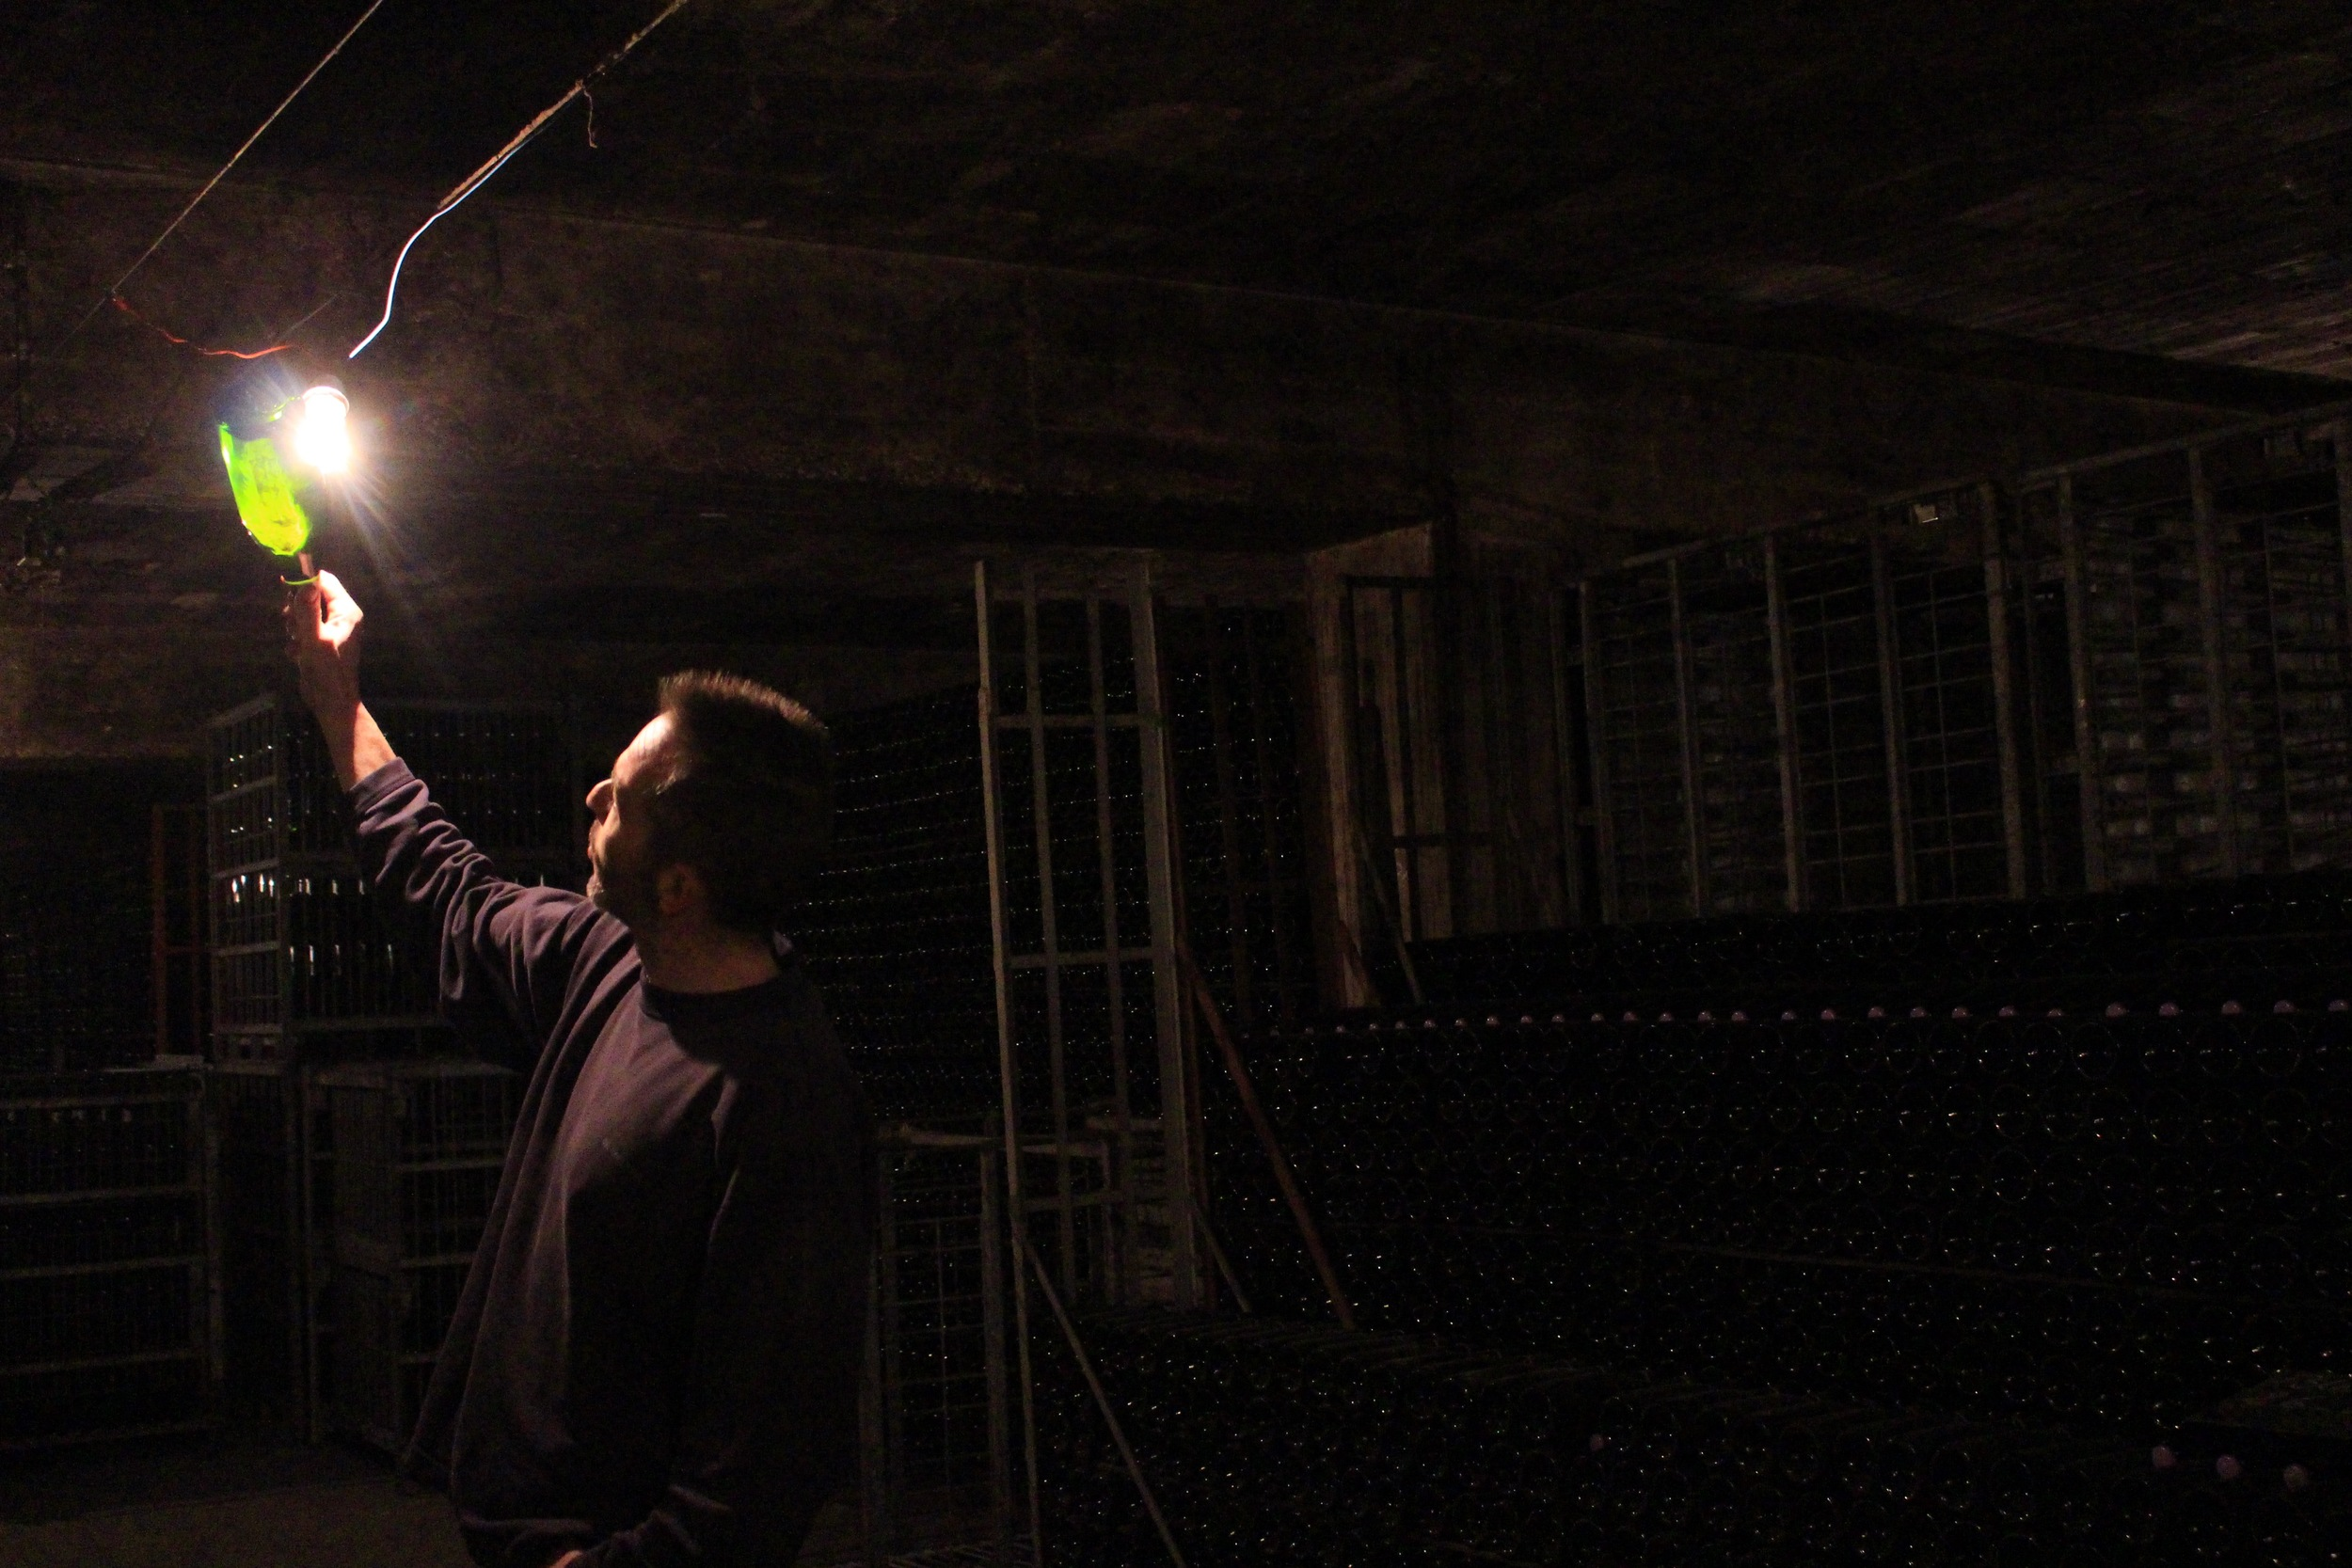 Champagne cellar tour at Charbaux Freres, Congy, France